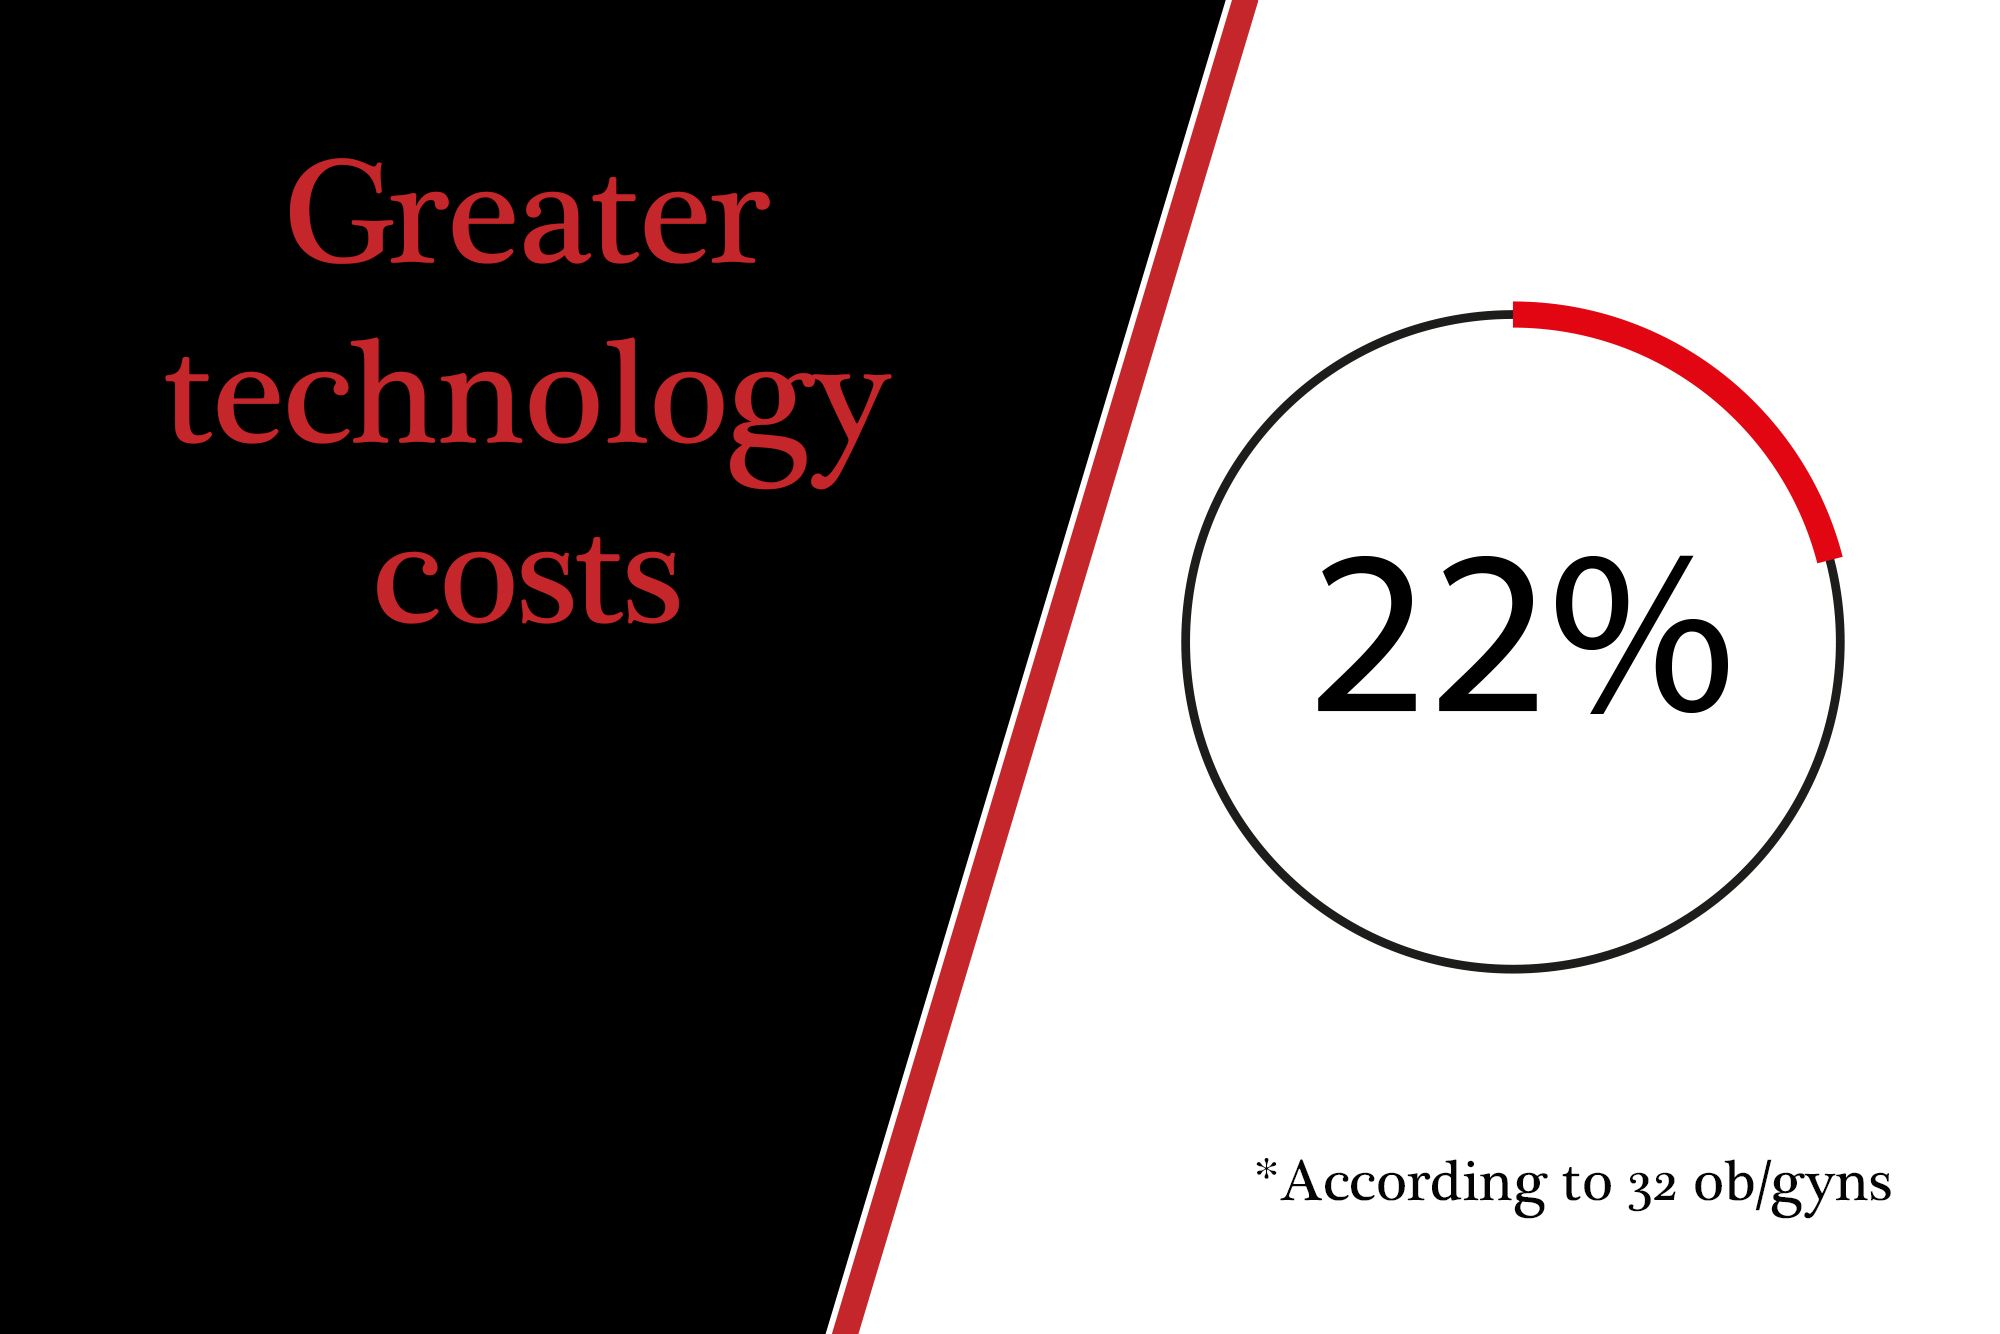 Greater technology costs